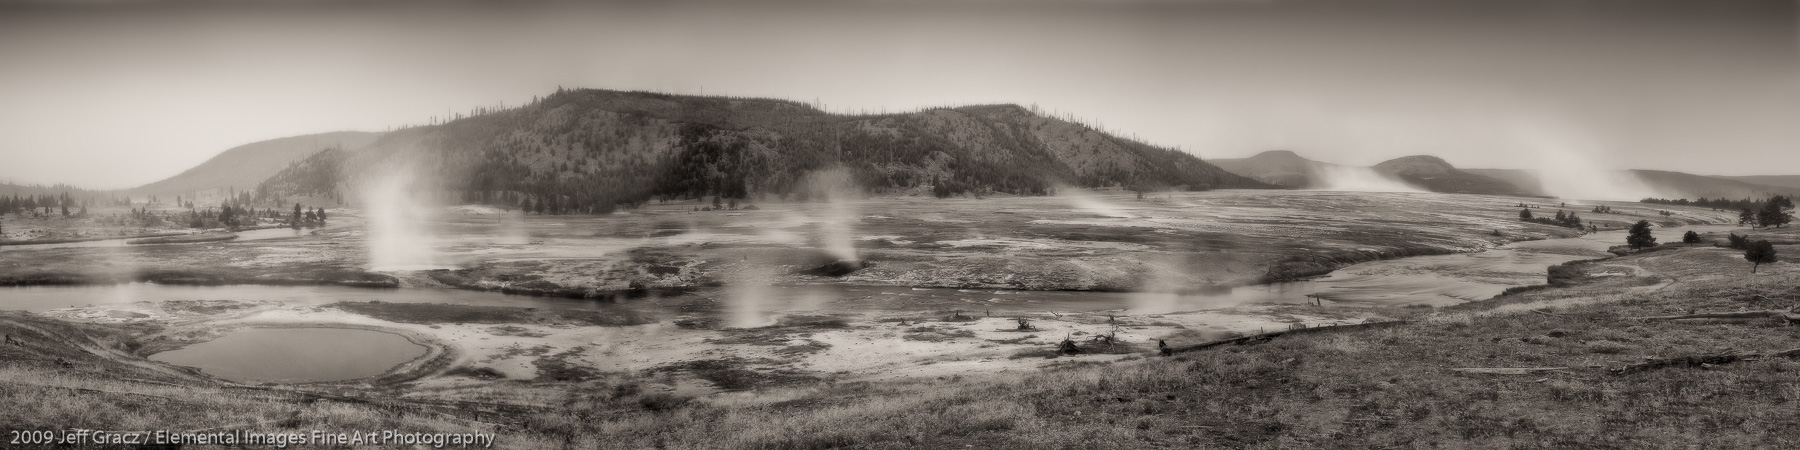 Midway Geyser Basin panoramic II |  | WY | USA - © 2009 Jeff Gracz / Elemental Images Fine Art Photography - All Rights Reserved Worldwide